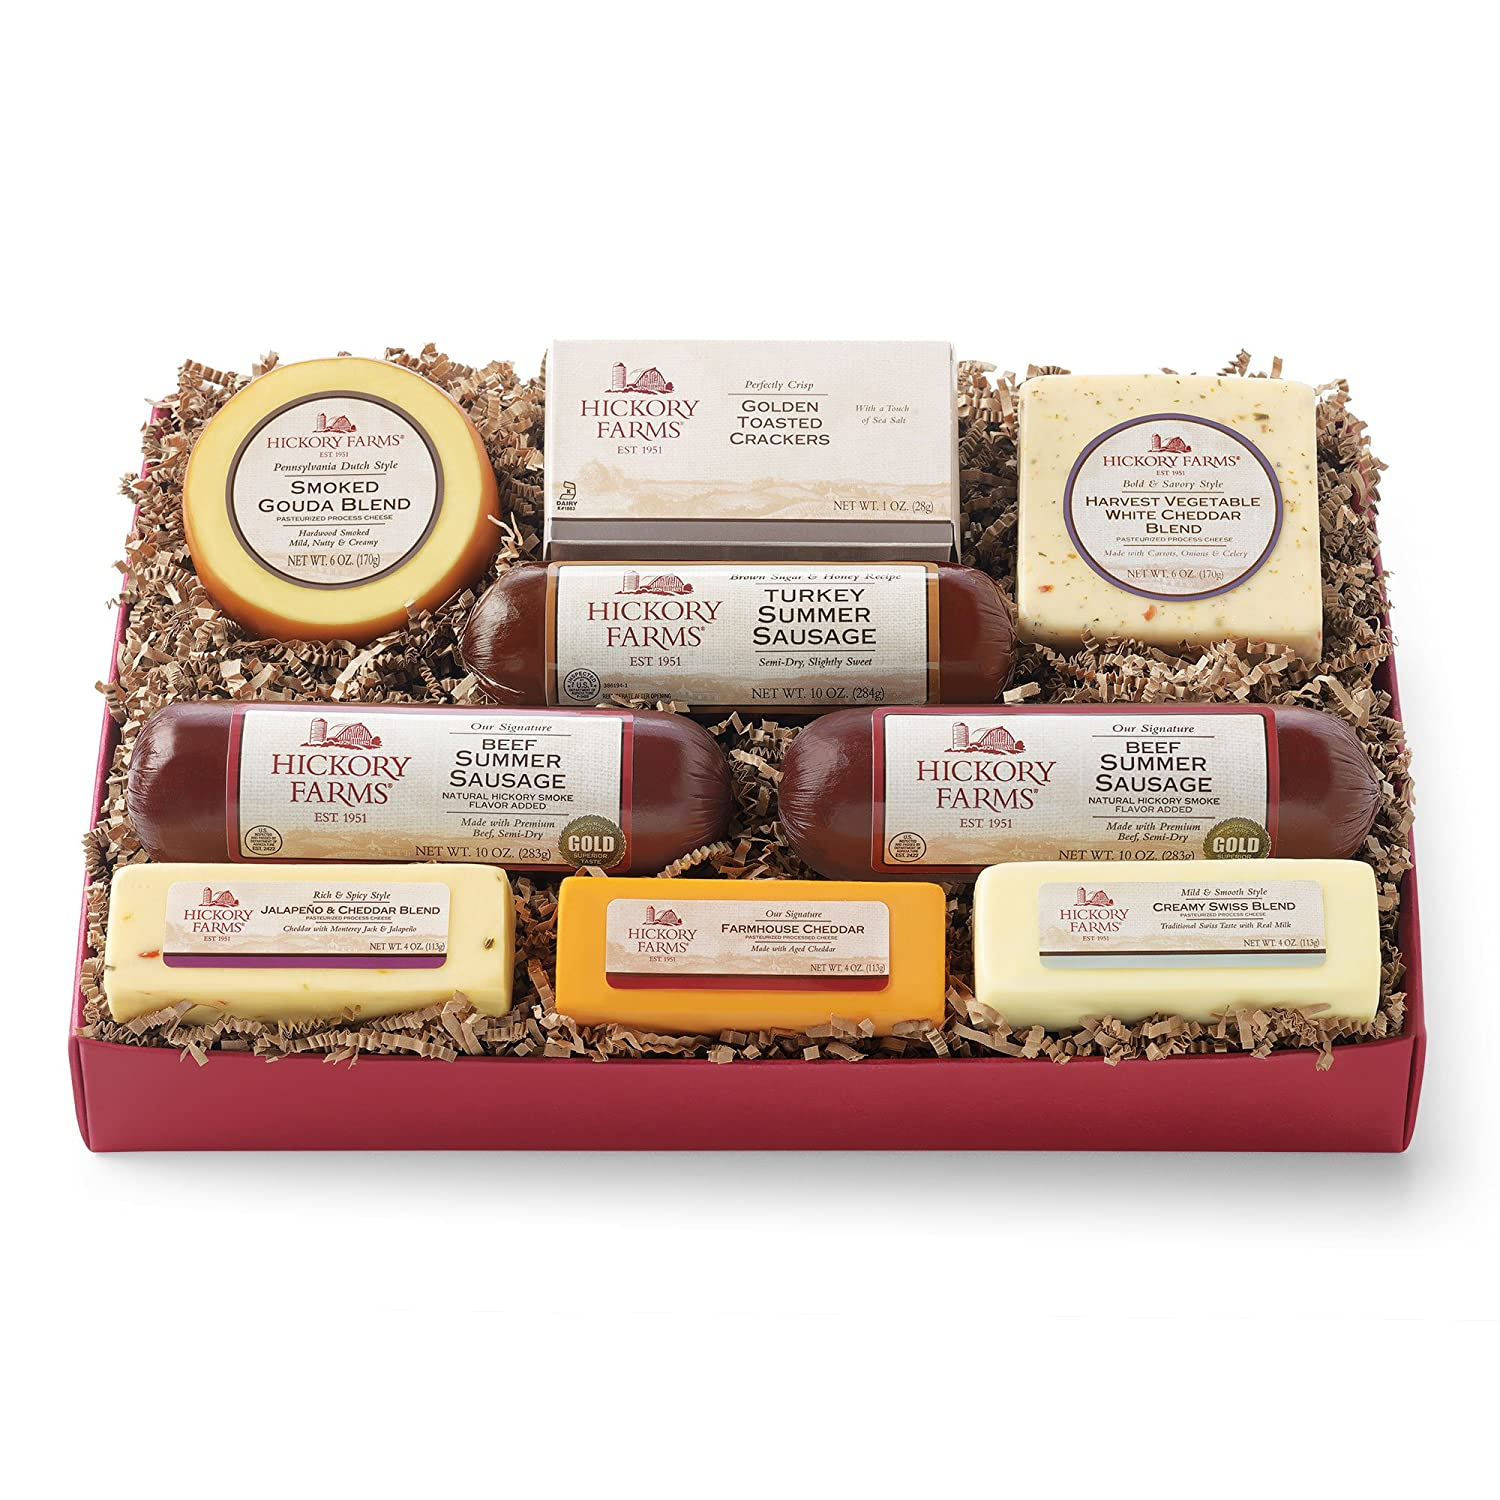 Hickory Farms Celebration Collection: Amazon.com: Grocery ...